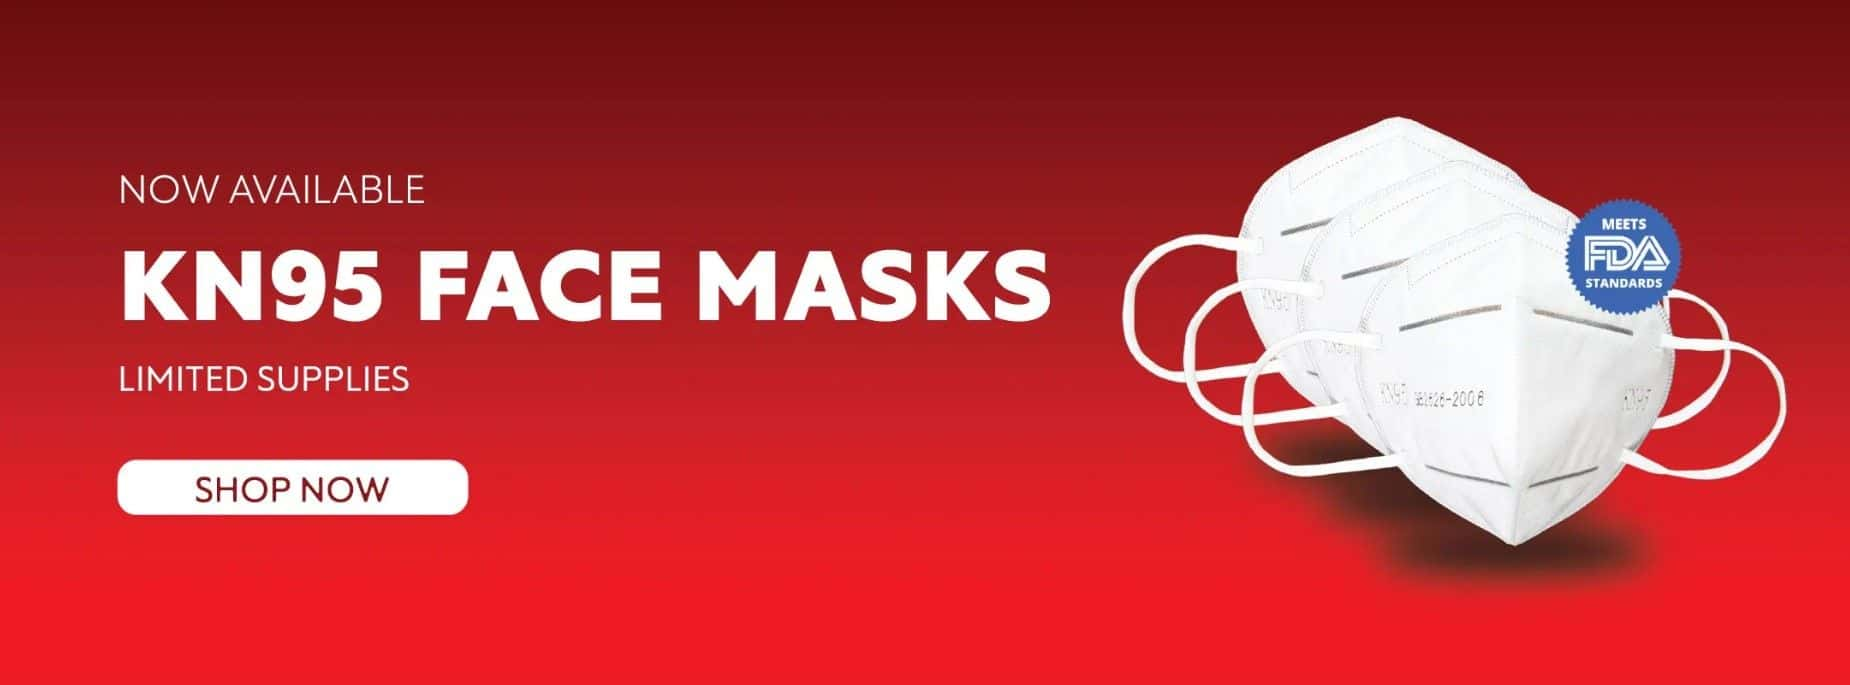 KN95 Face Masks are now available directly from MyMedic.com